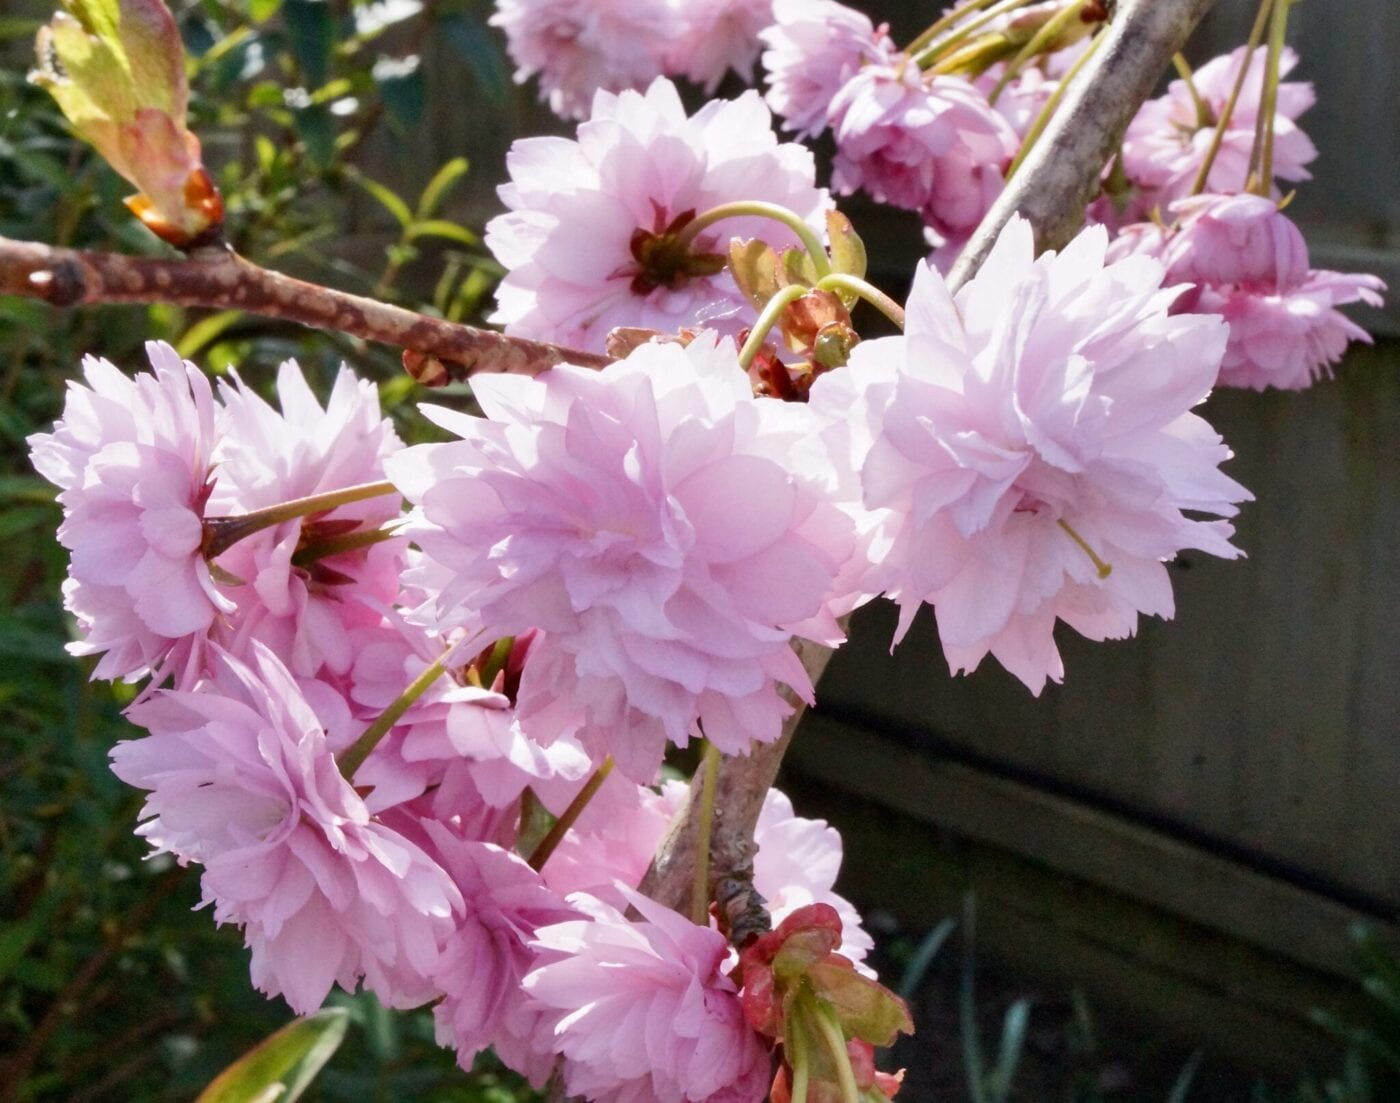 'Cheal's Weeping' cherry flowers